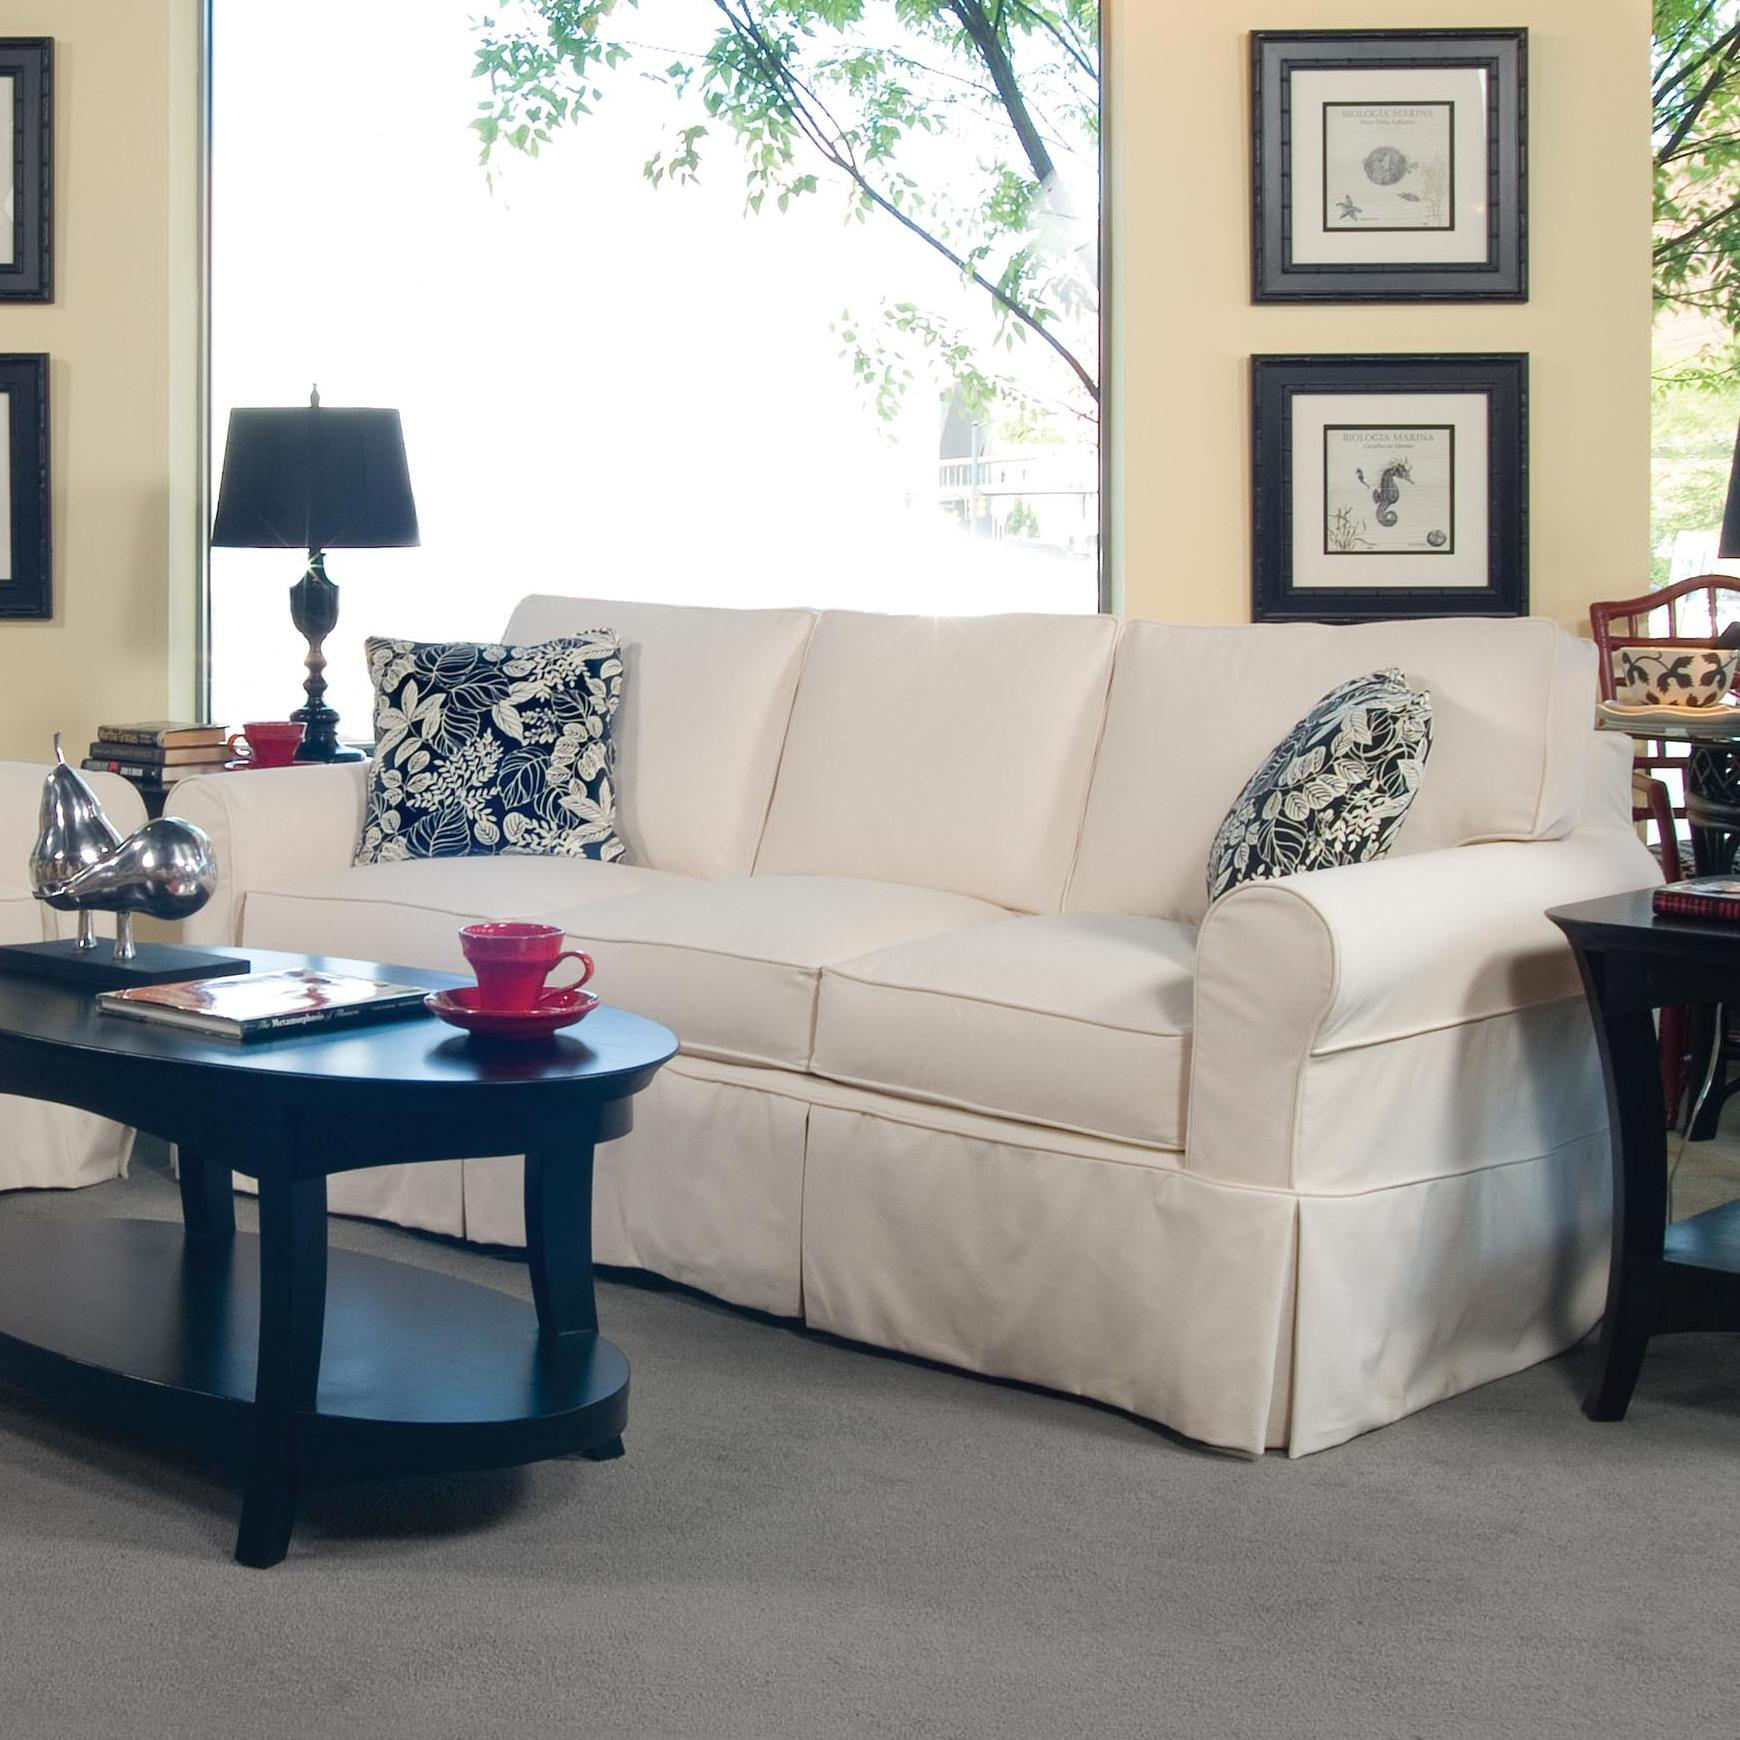 728 3-Seater Stationary Sofa with Slipcover by Braxton Culler at Alison Craig Home Furnishings